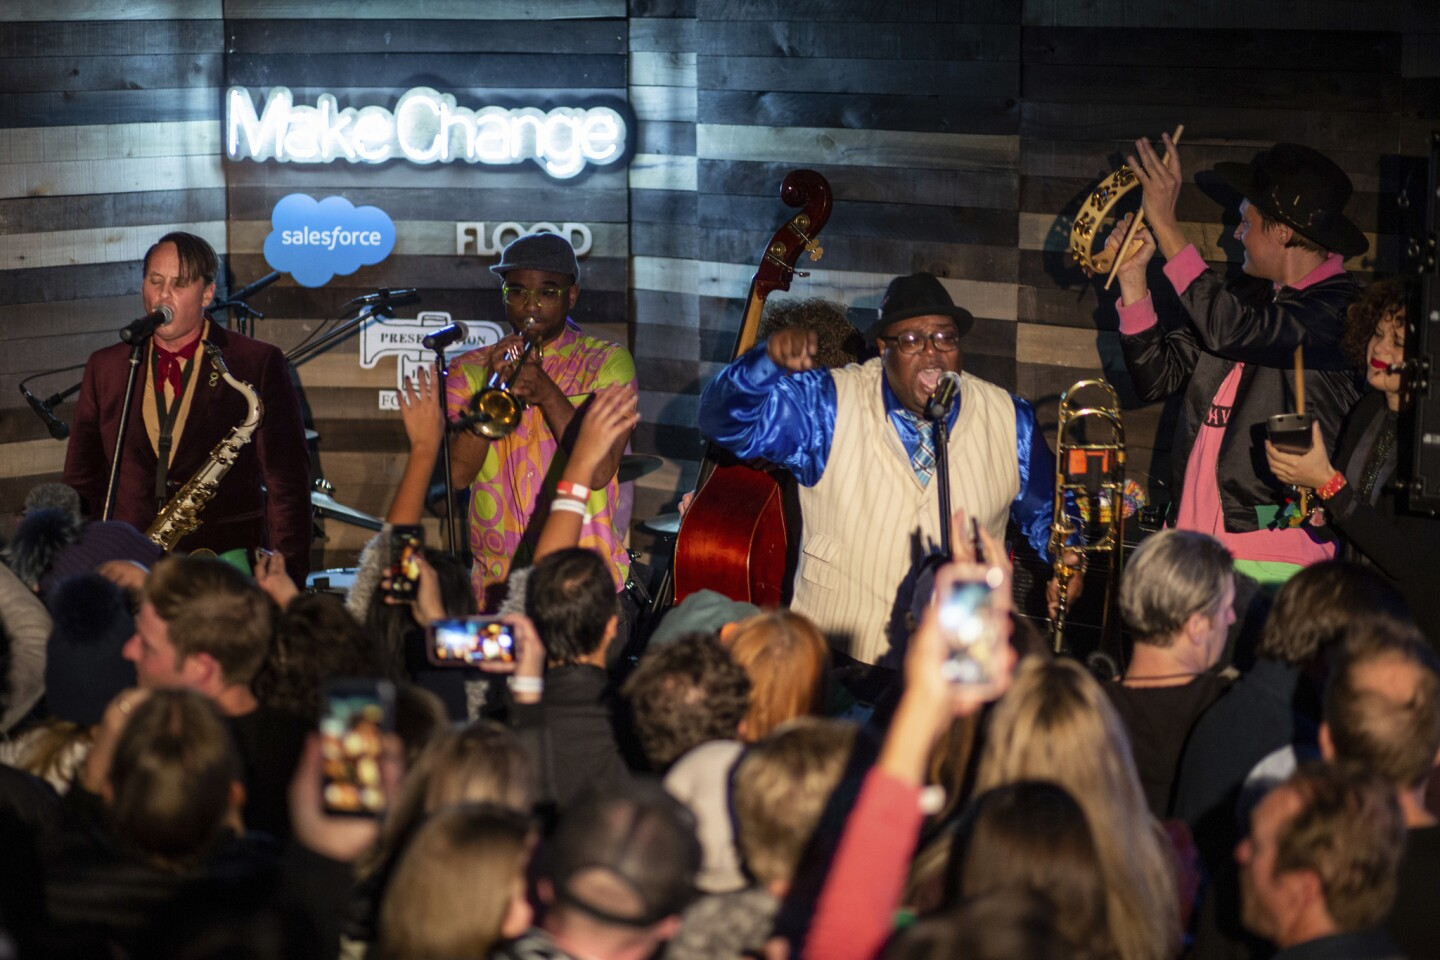 The Preservation Hall Jazz Band performs with Win Butler and Regine Chassagne of Arcade Fire at the Salesforce Music Lodge during the Sundance Film Festival.